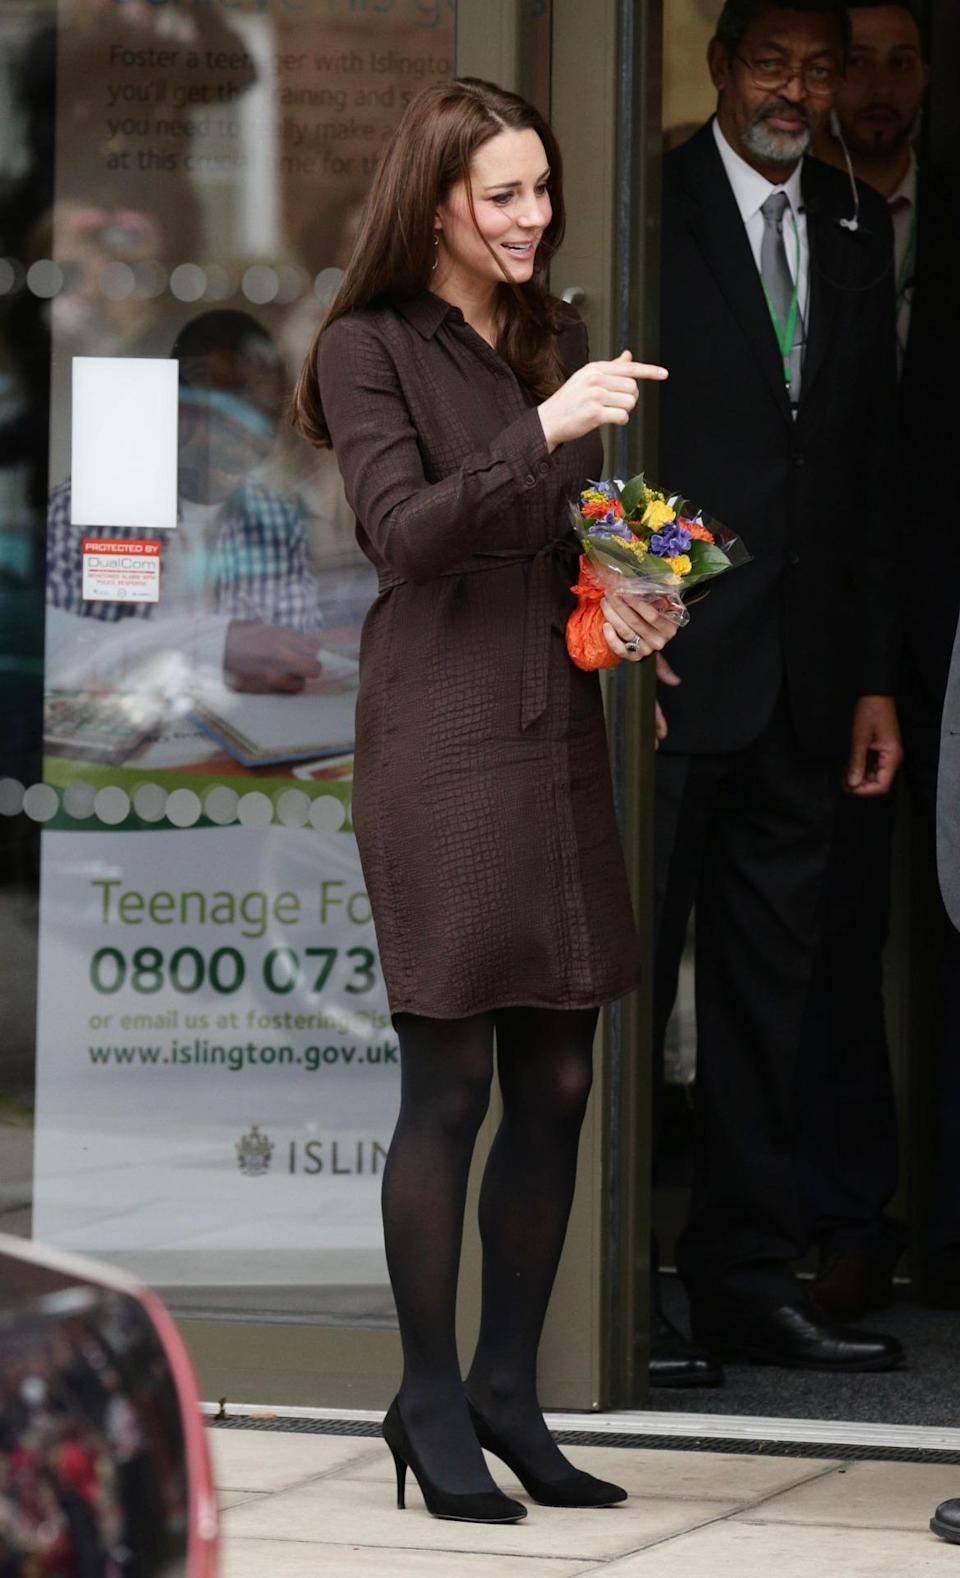 <p>Kate donned a silk shirtdress by Hobbs for a day in London. Featuring a subtle animal print, she accessorised with a black Mulberry clutch and suede Stuart Weitzman pumps.</p><p><i>[Photo: PA]</i></p>